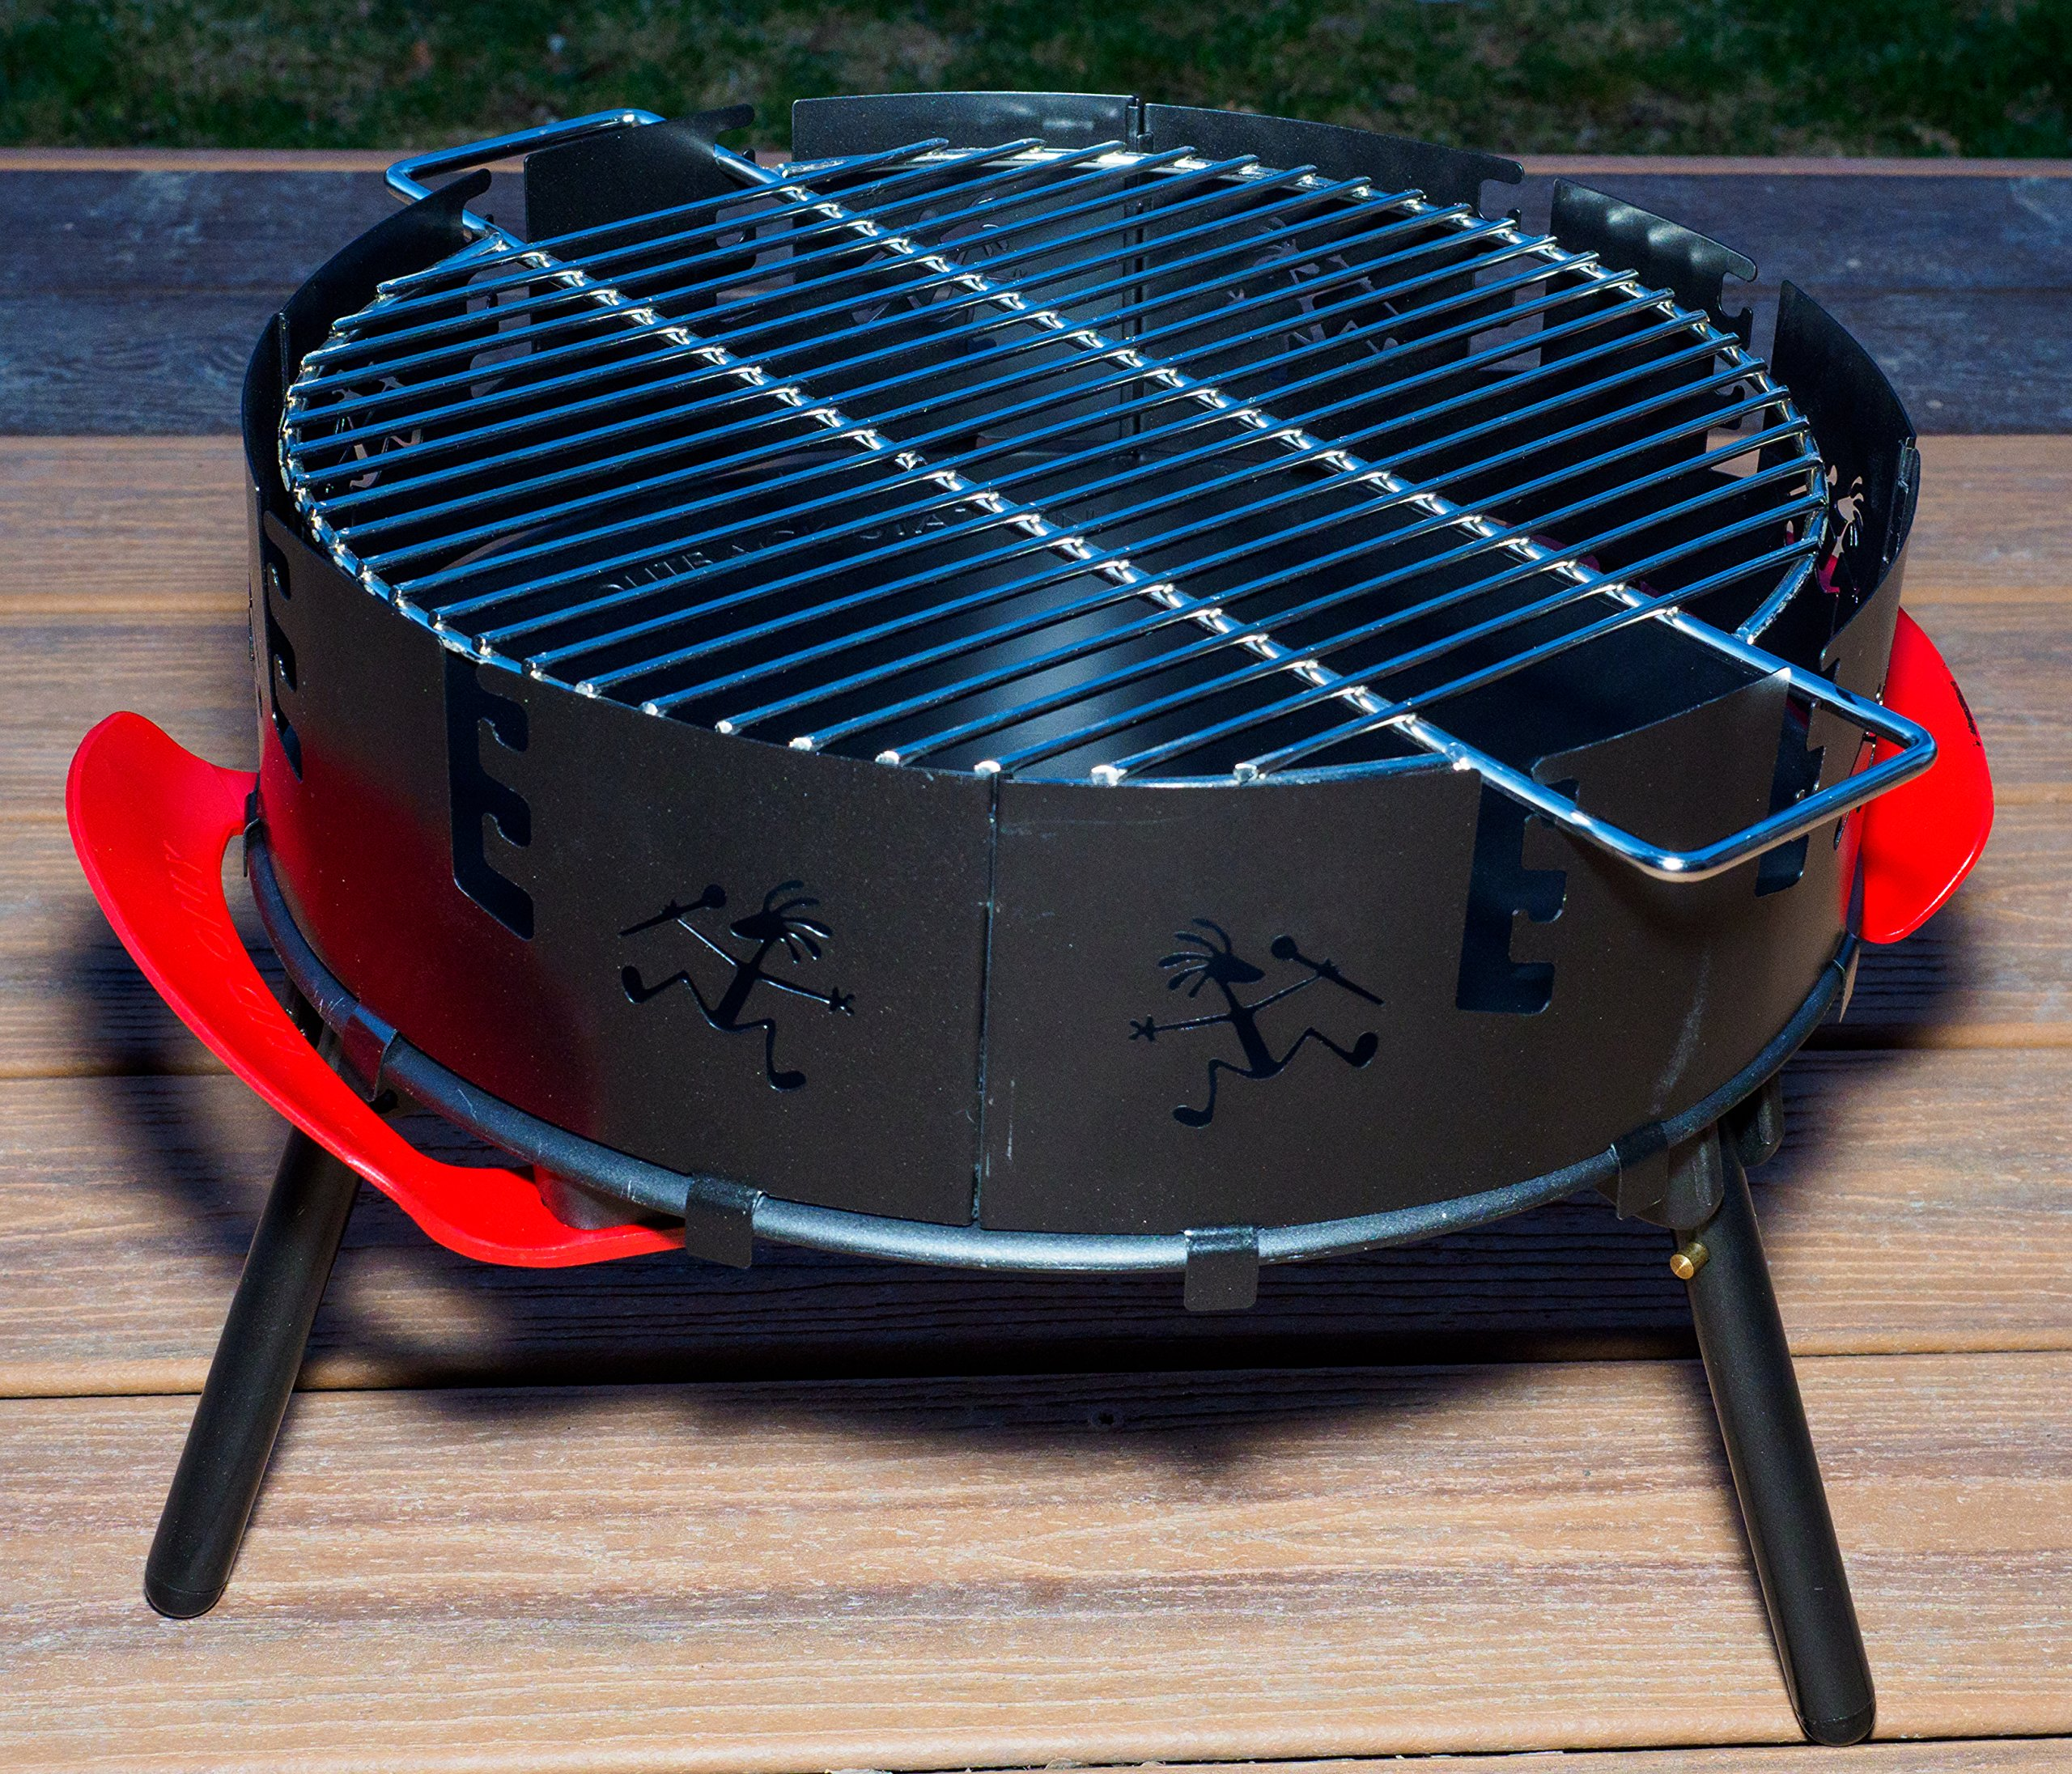 Outback Station Portable Outdoor Grill, Outdoor Grill and Dutch Oven Stand - Dutch Oven not Included